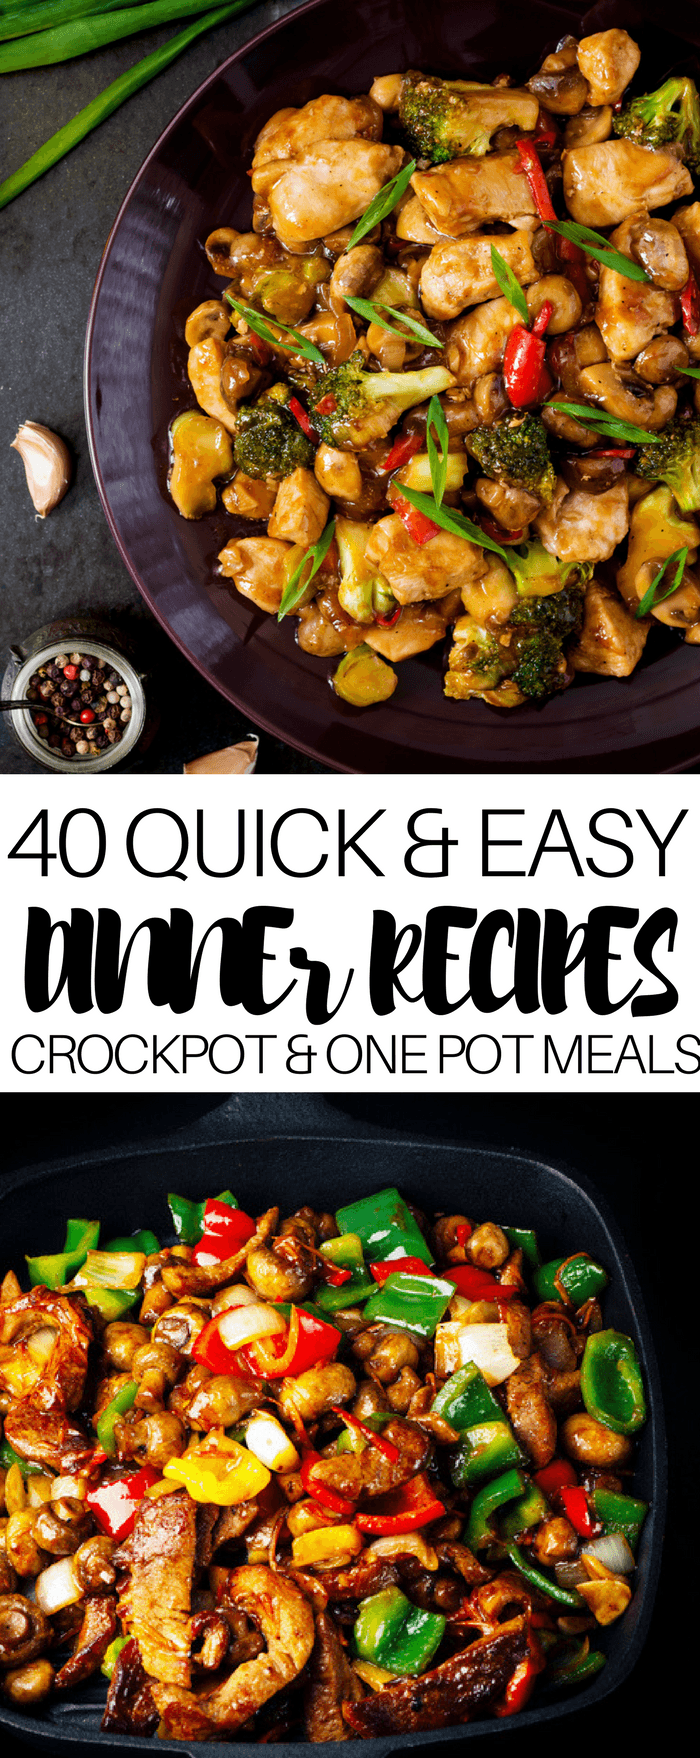 Make your dinner delicious this week with some help from these easy 5 Ingredient Crock Pot Recipes! Dinner doesn't have to be hard! These delicious 5 Ingredient Crock Pot Recipes couldn't be easier, and are packed with flavors your family will love!